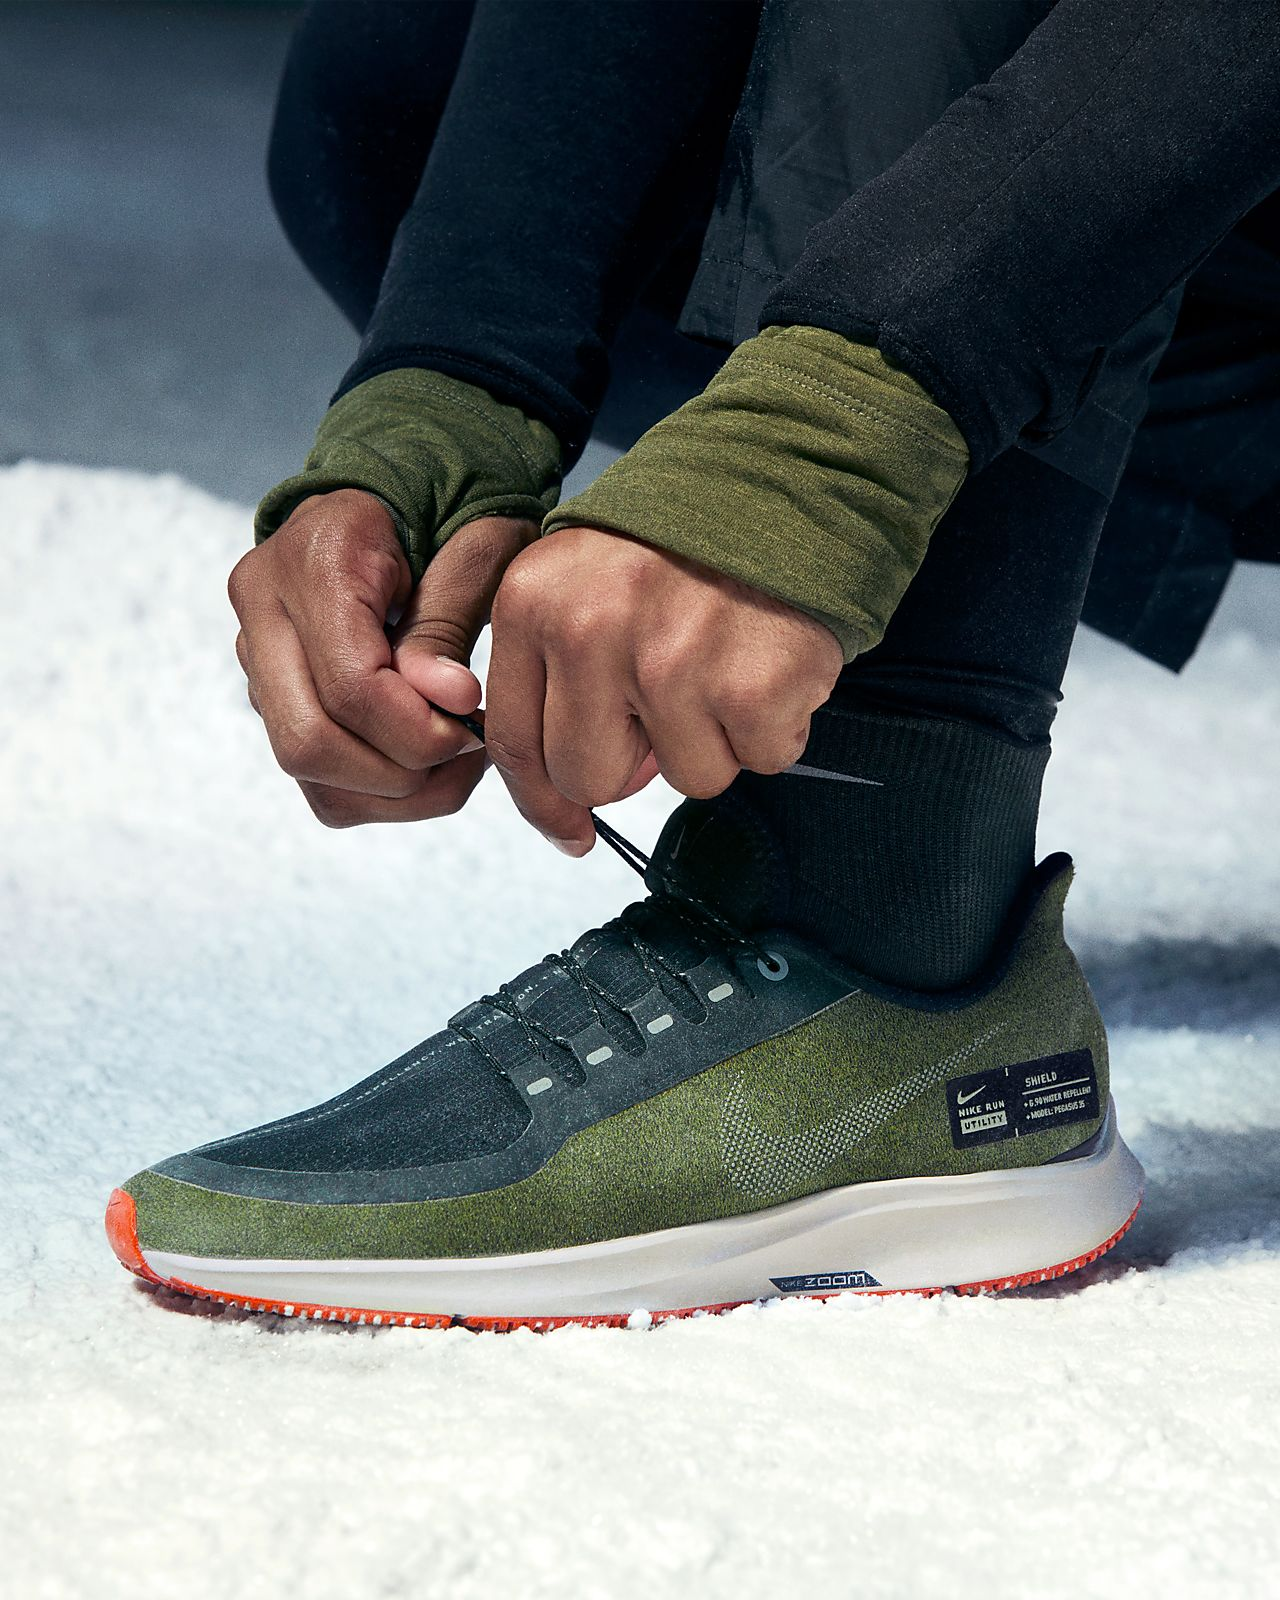 finest selection 89f12 48682 ... Nike Air Zoom Pegasus 35 Shield Water-Repellent Men s Running Shoe